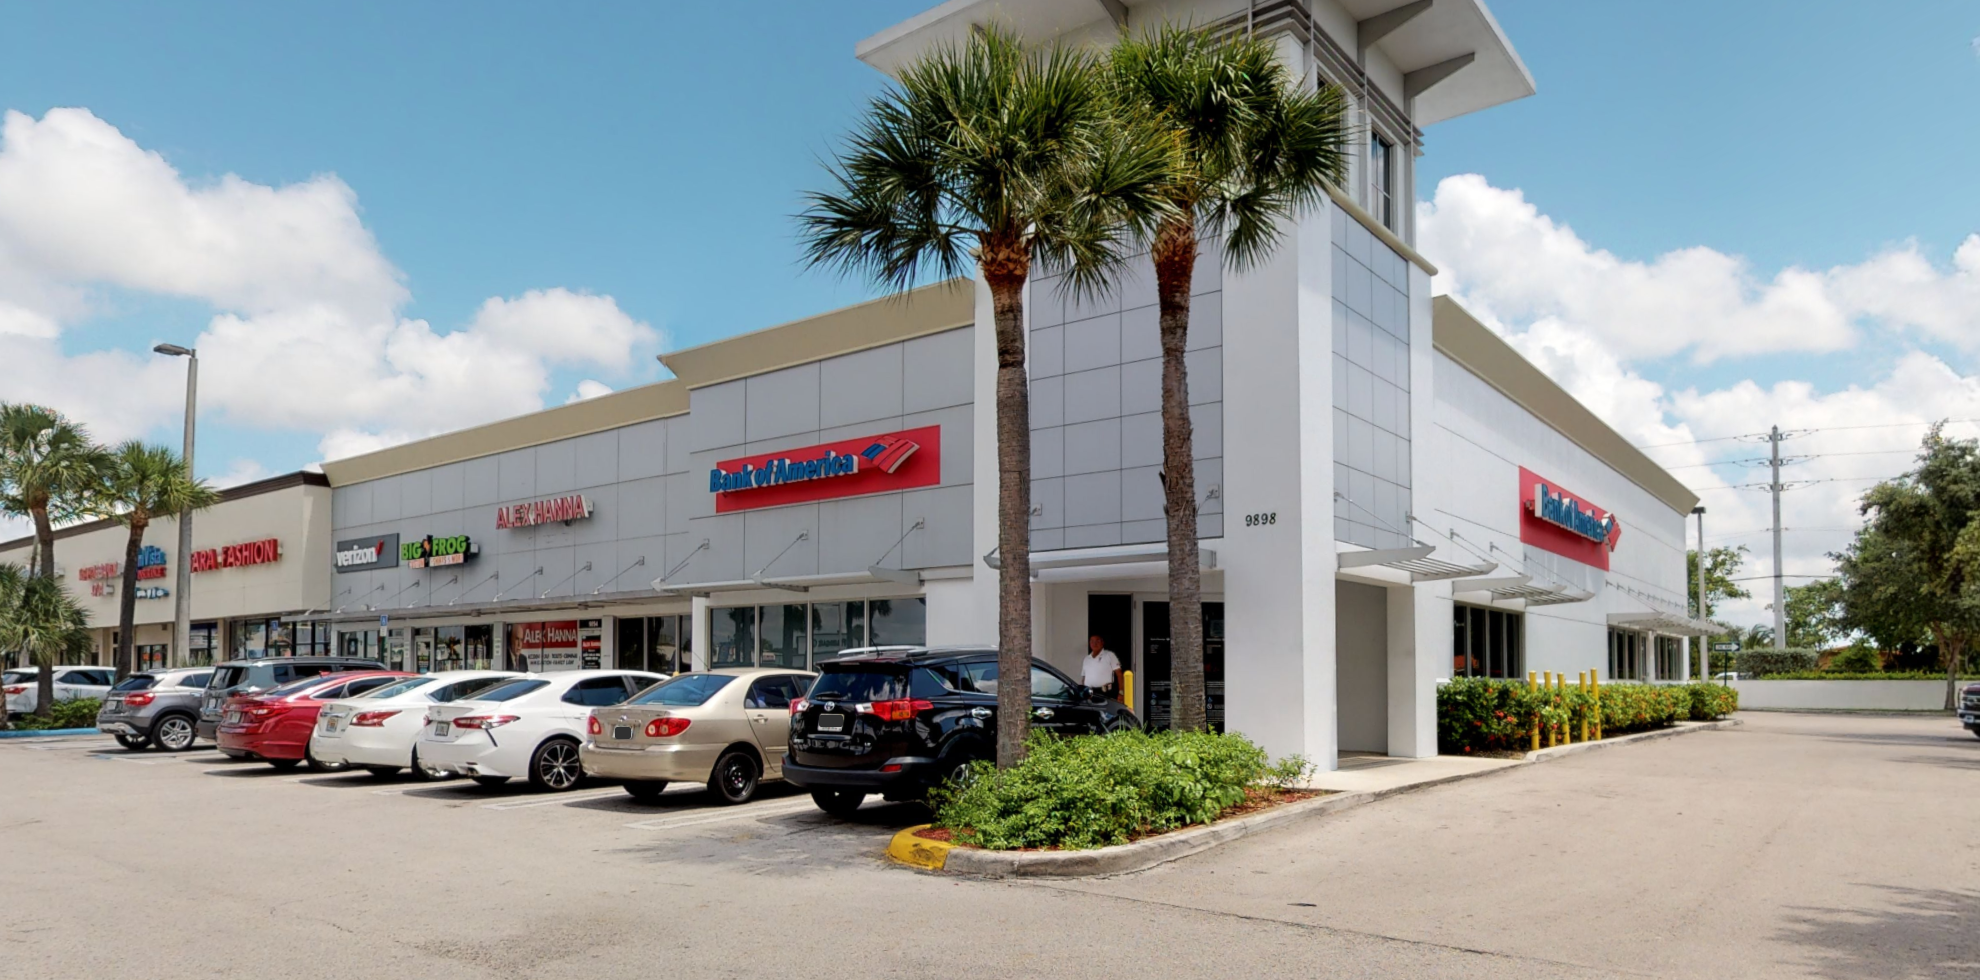 Bank of America financial center with drive-thru ATM | 9898 SW 40th St, Miami, FL 33165